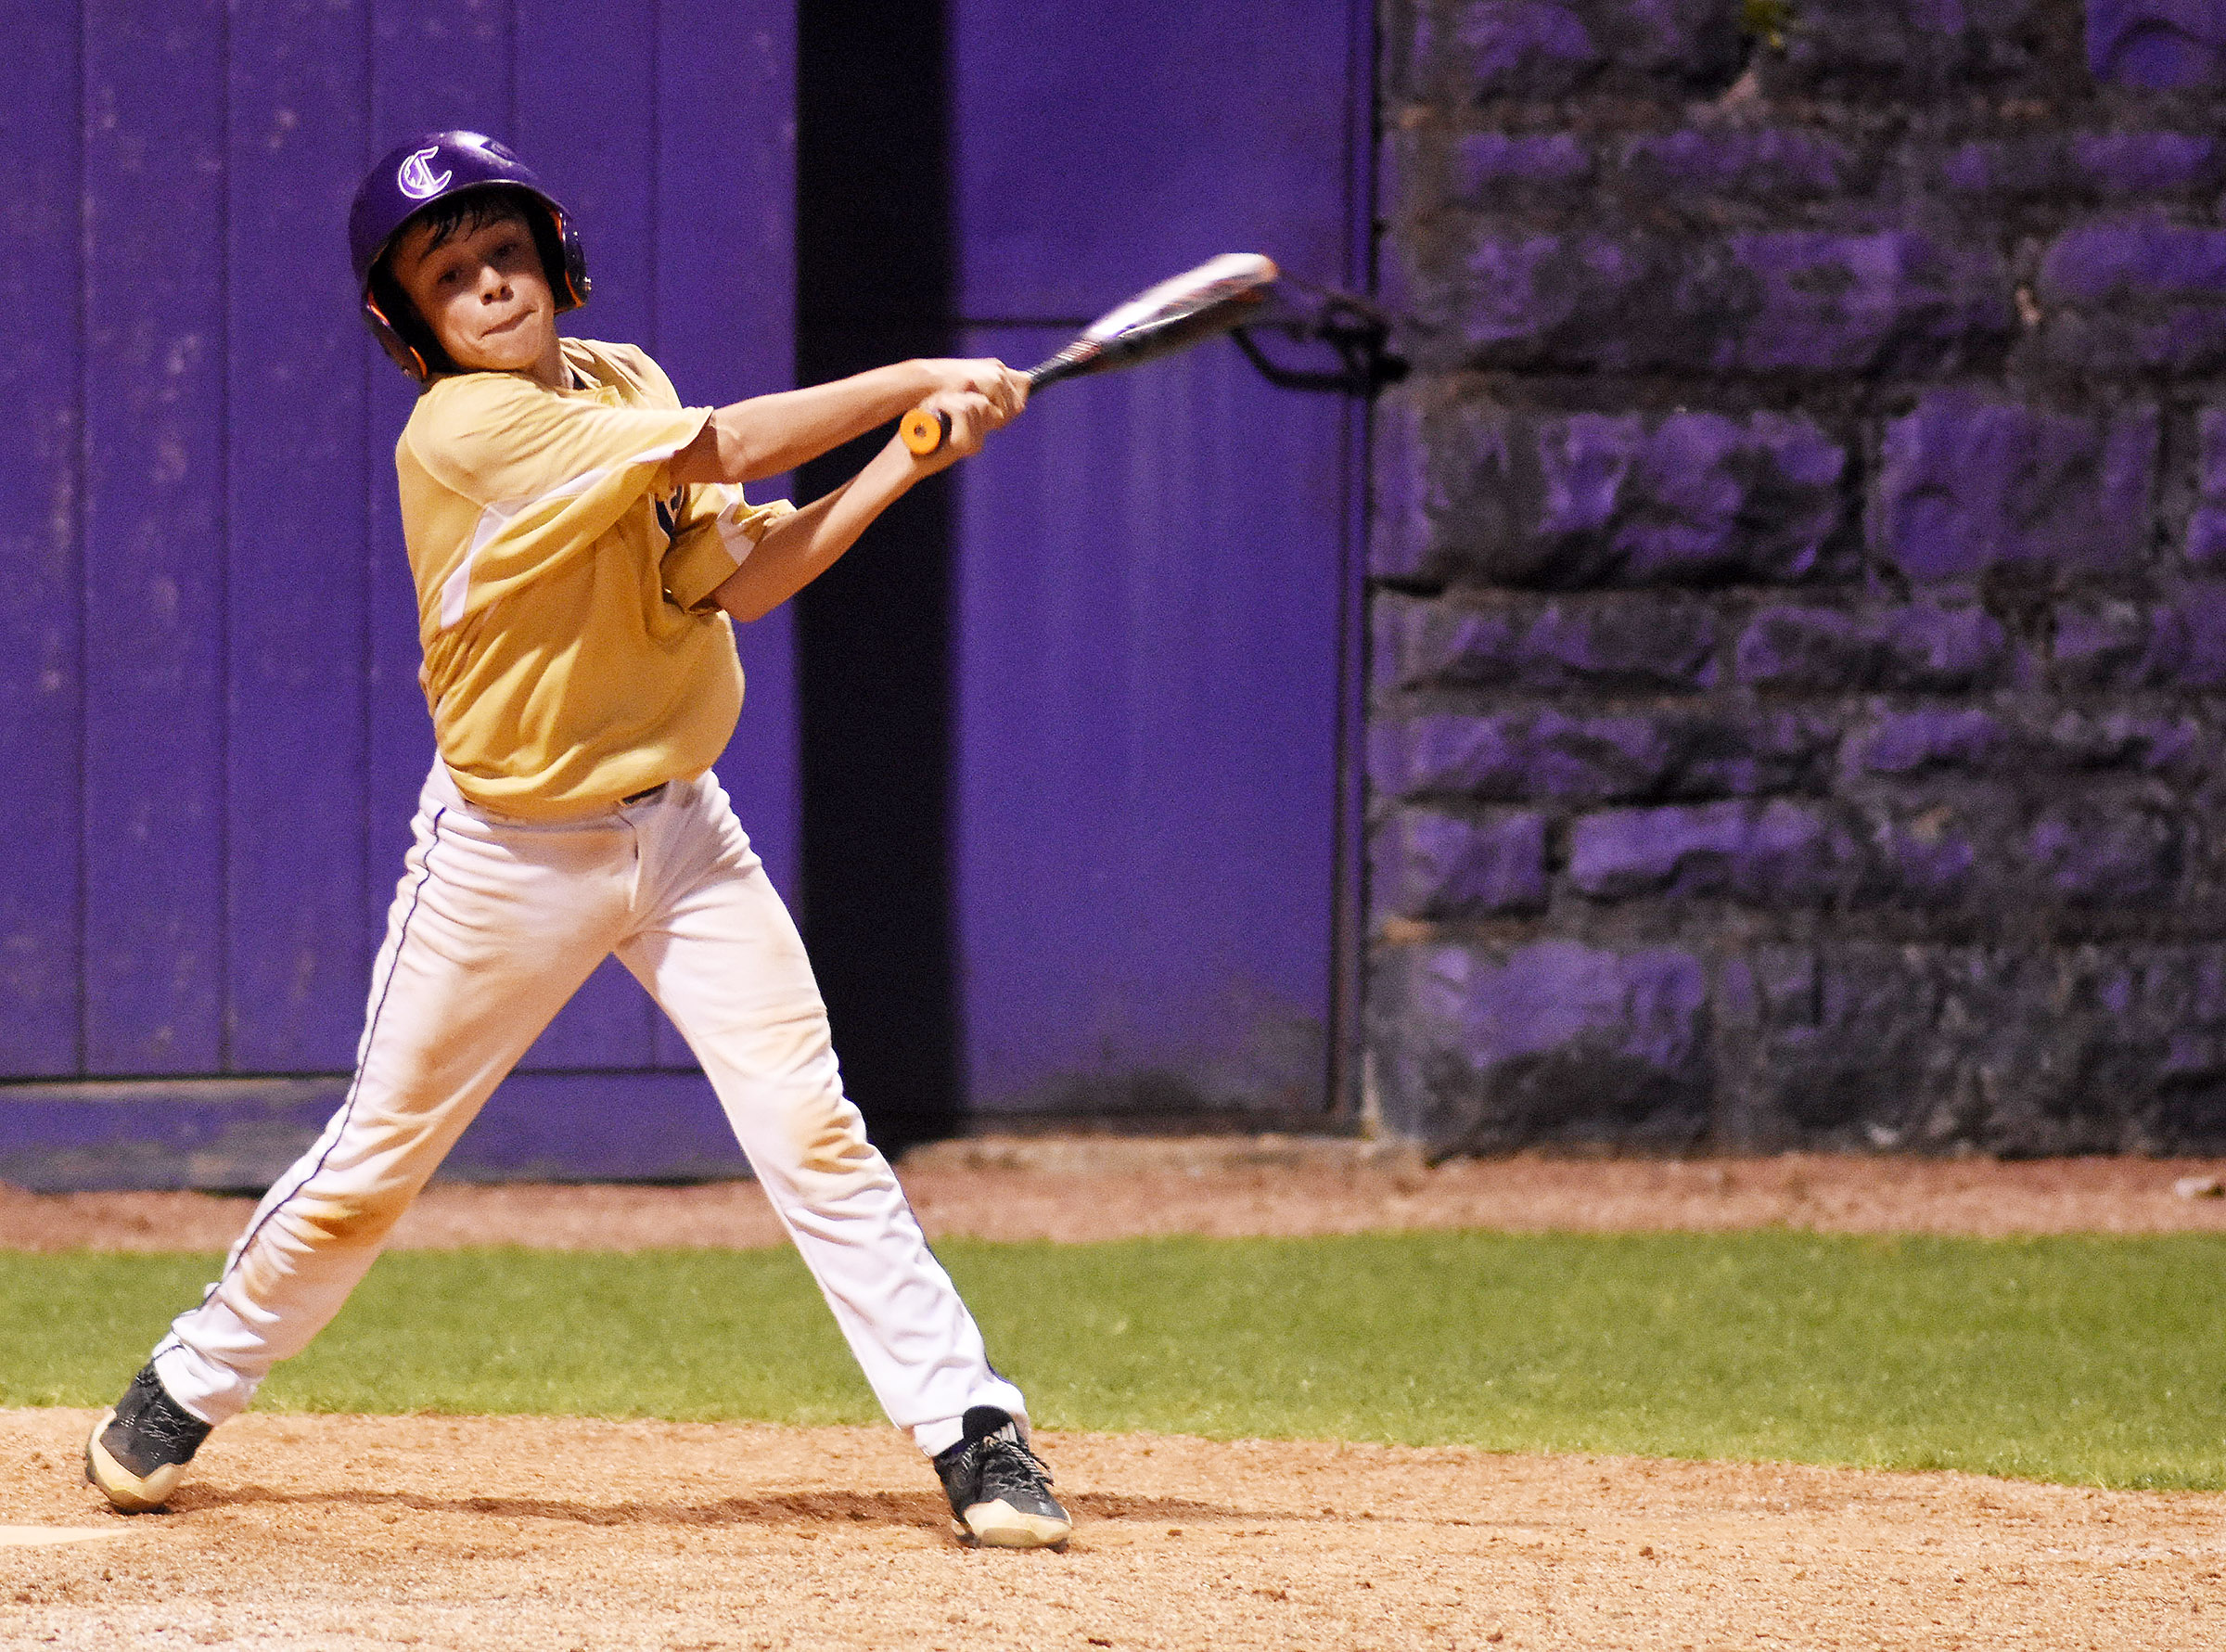 CMS seventh-grader Chase Hord swings at a pitch.